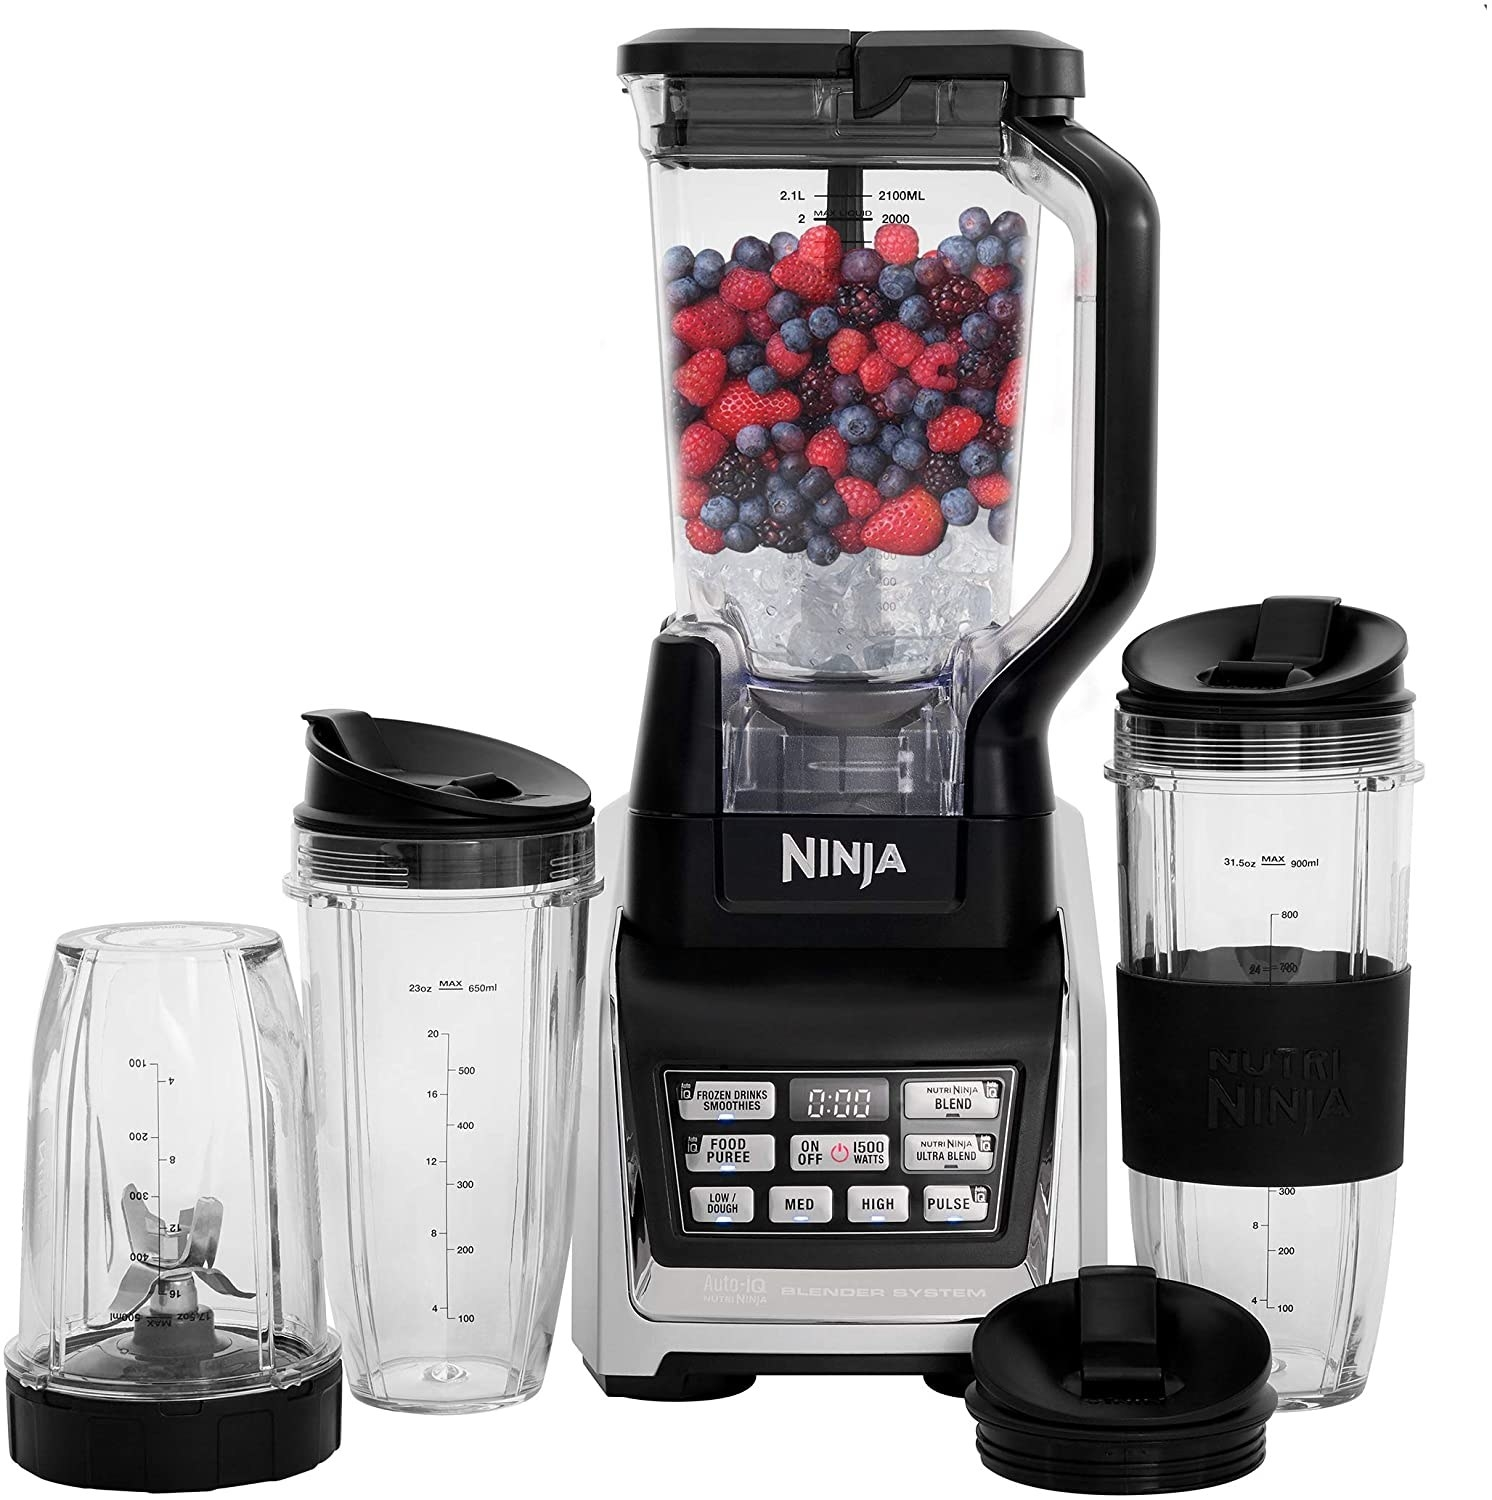 The blender and the accessories